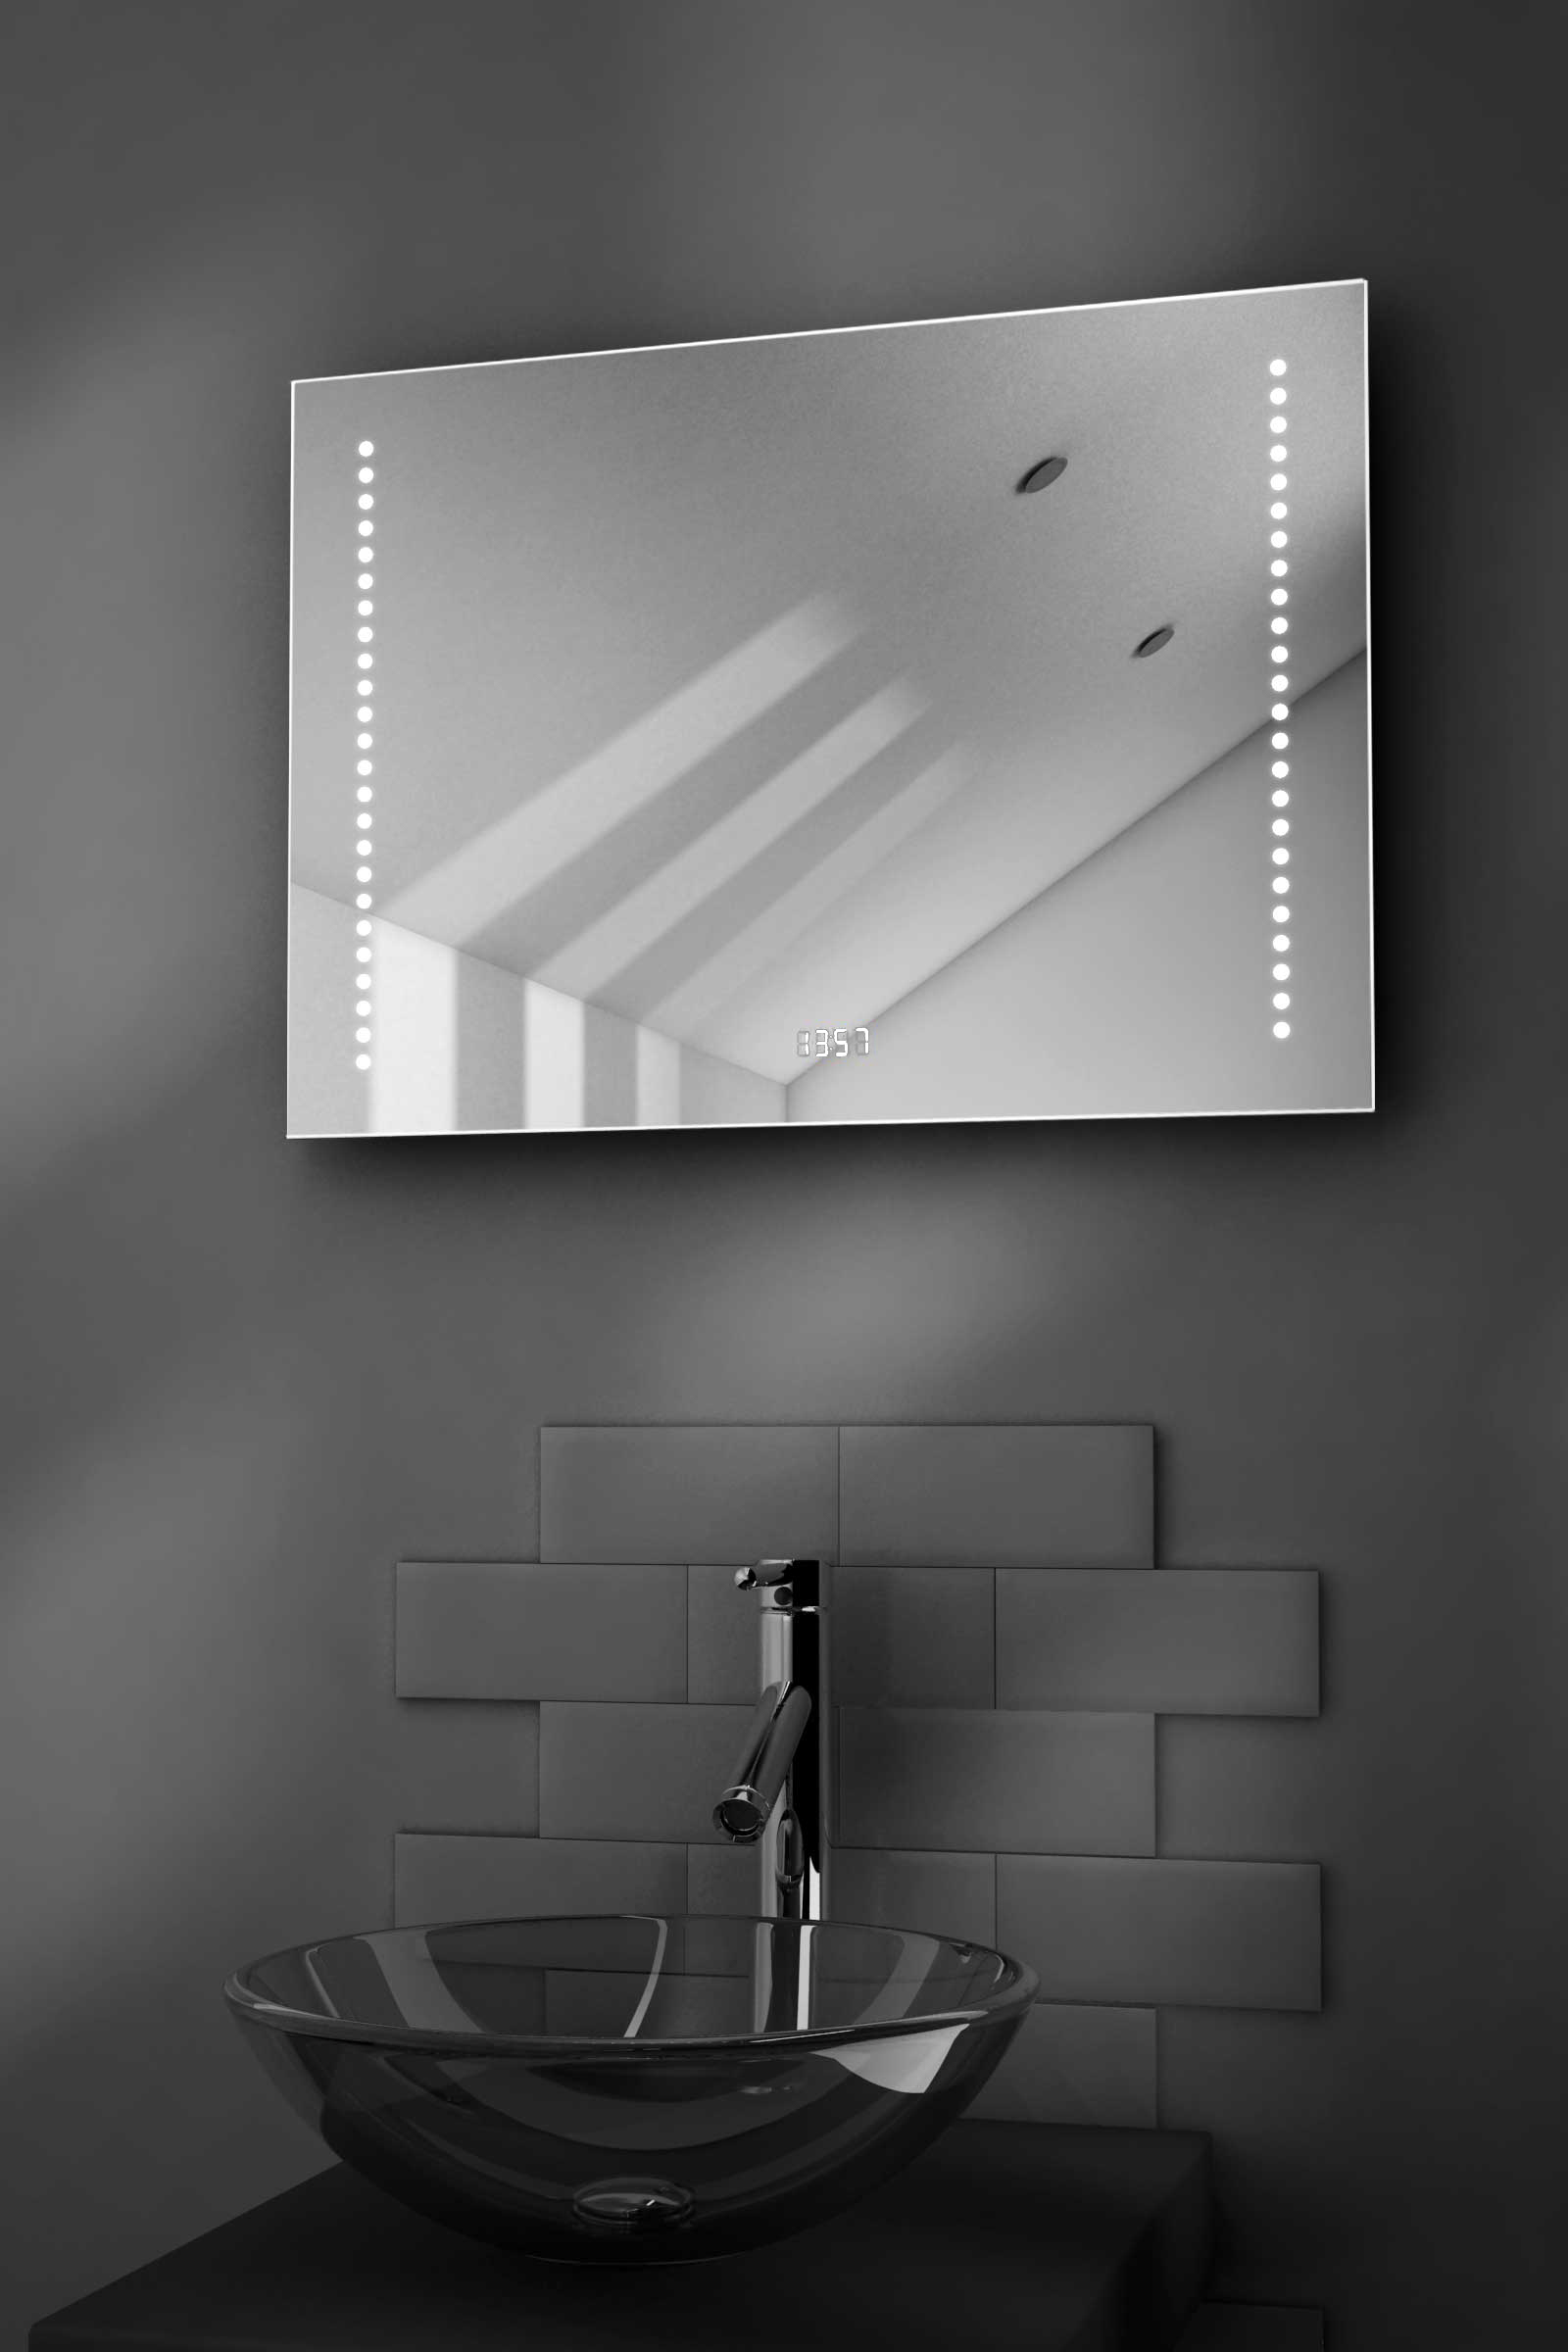 Beatrix Shaver Bathroom Mirror With Clock, Demisting Pad & Sensor k193 by Powerful Vision Ltd.